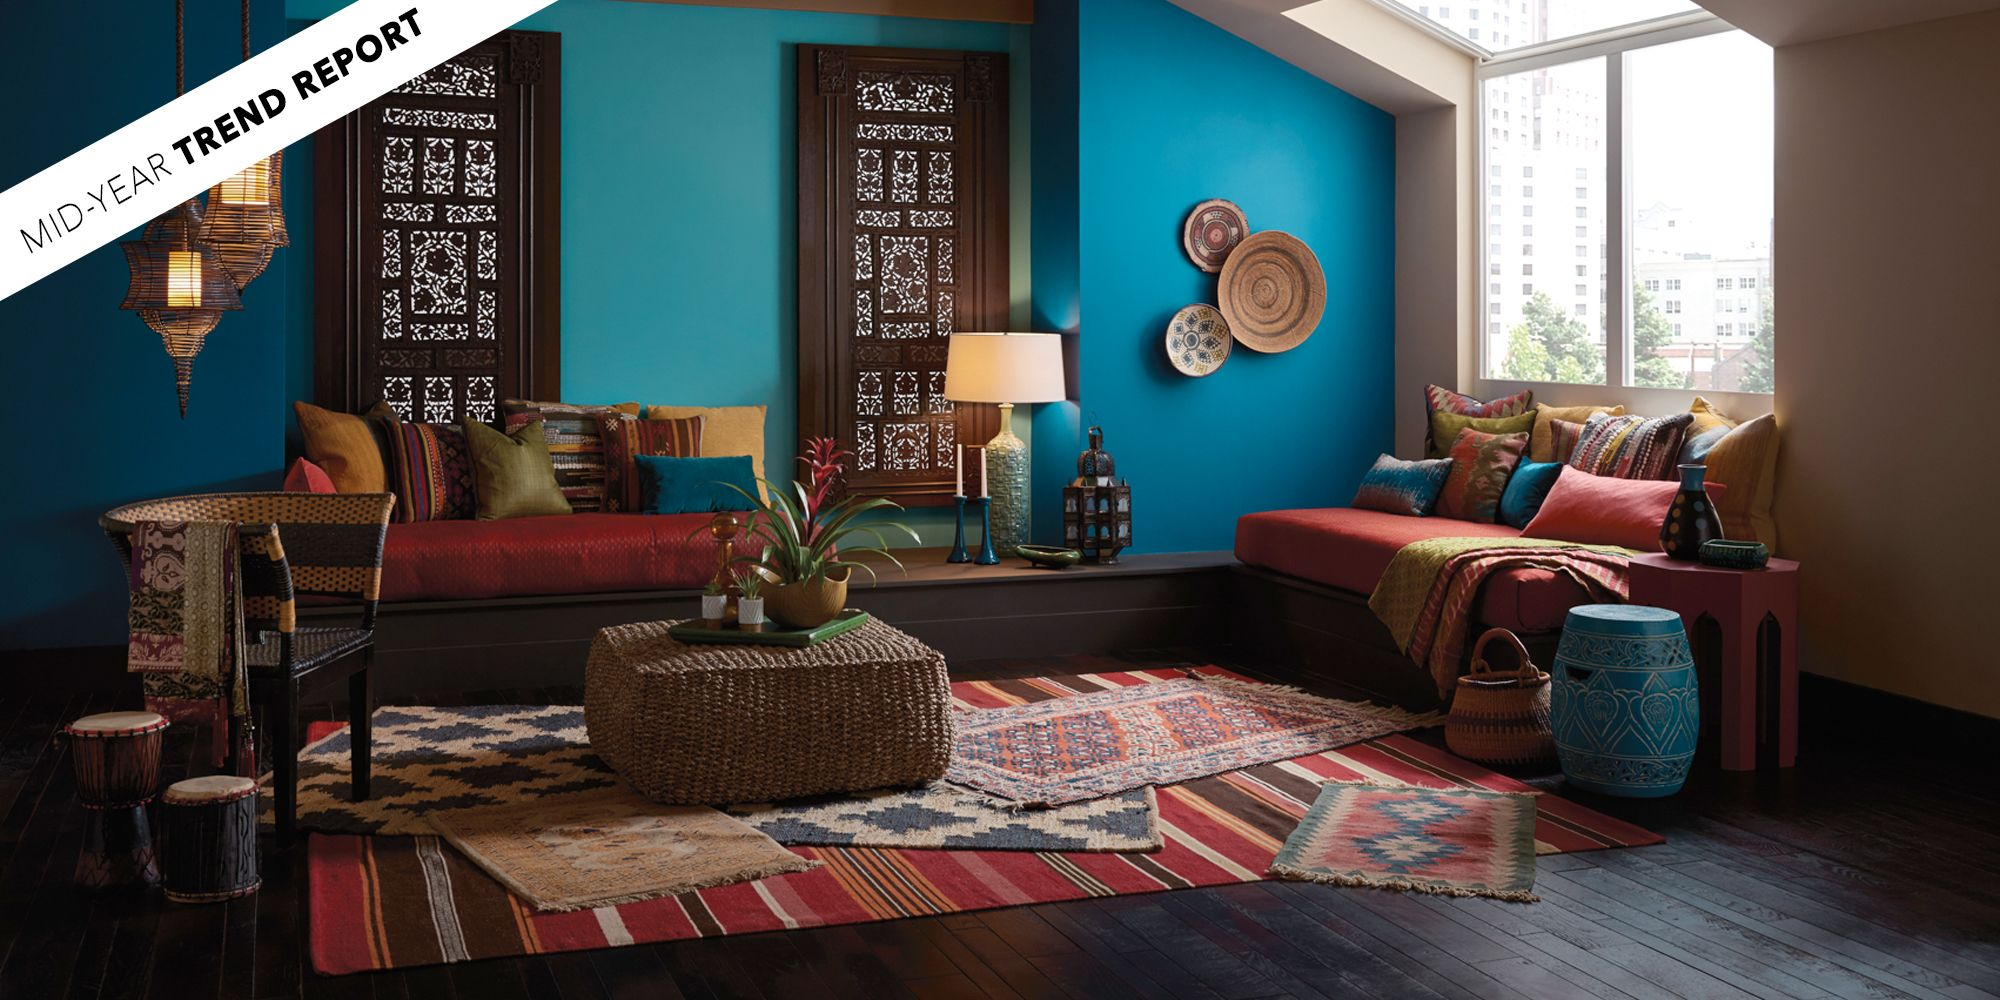 The Biggest Color Trends 2017 So Far Interior Design Color Trends